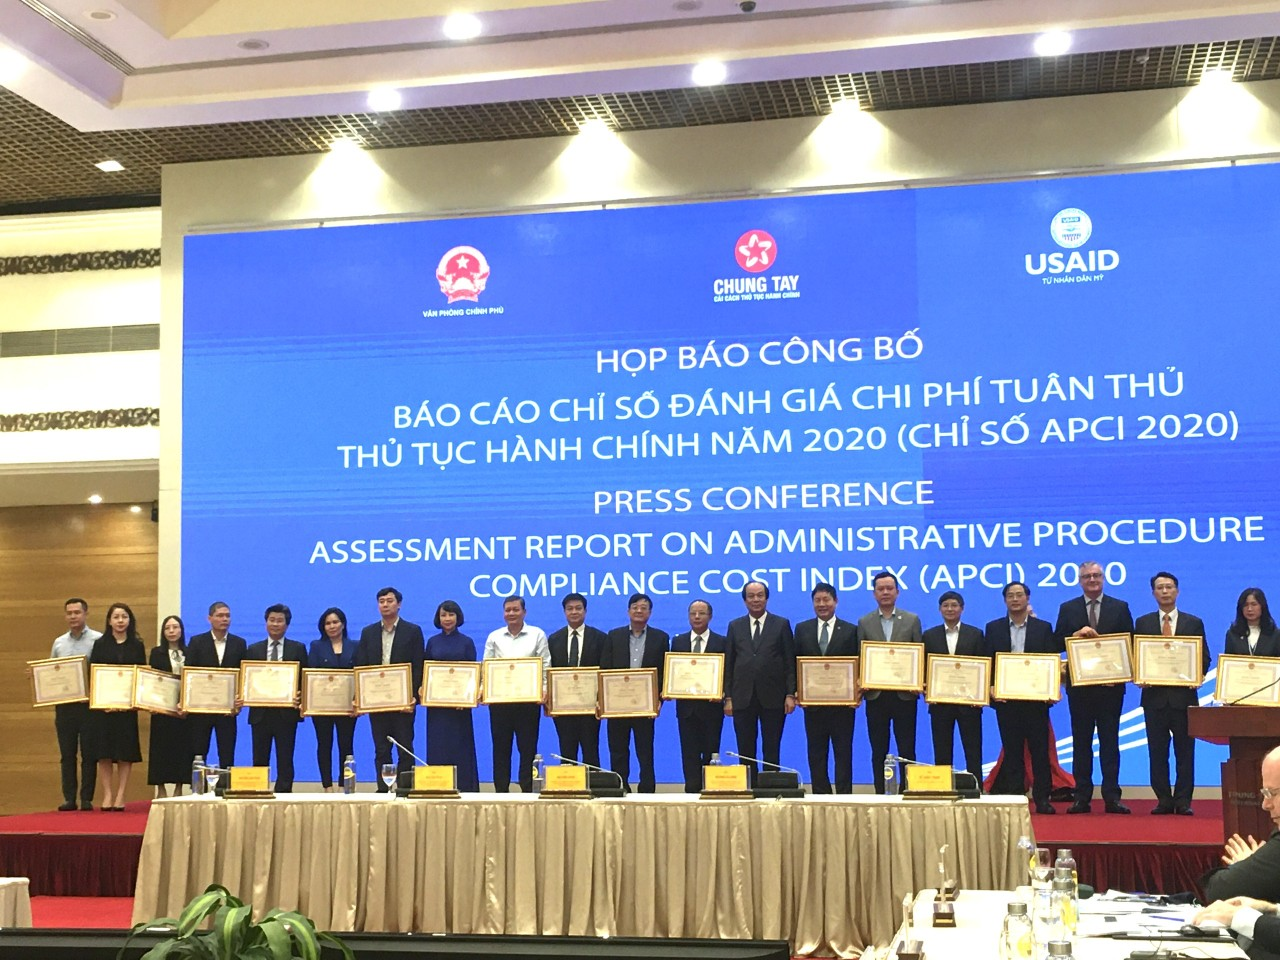 Archivement in Policies Supporting Activities of Vietnam Textile and Apparel Association